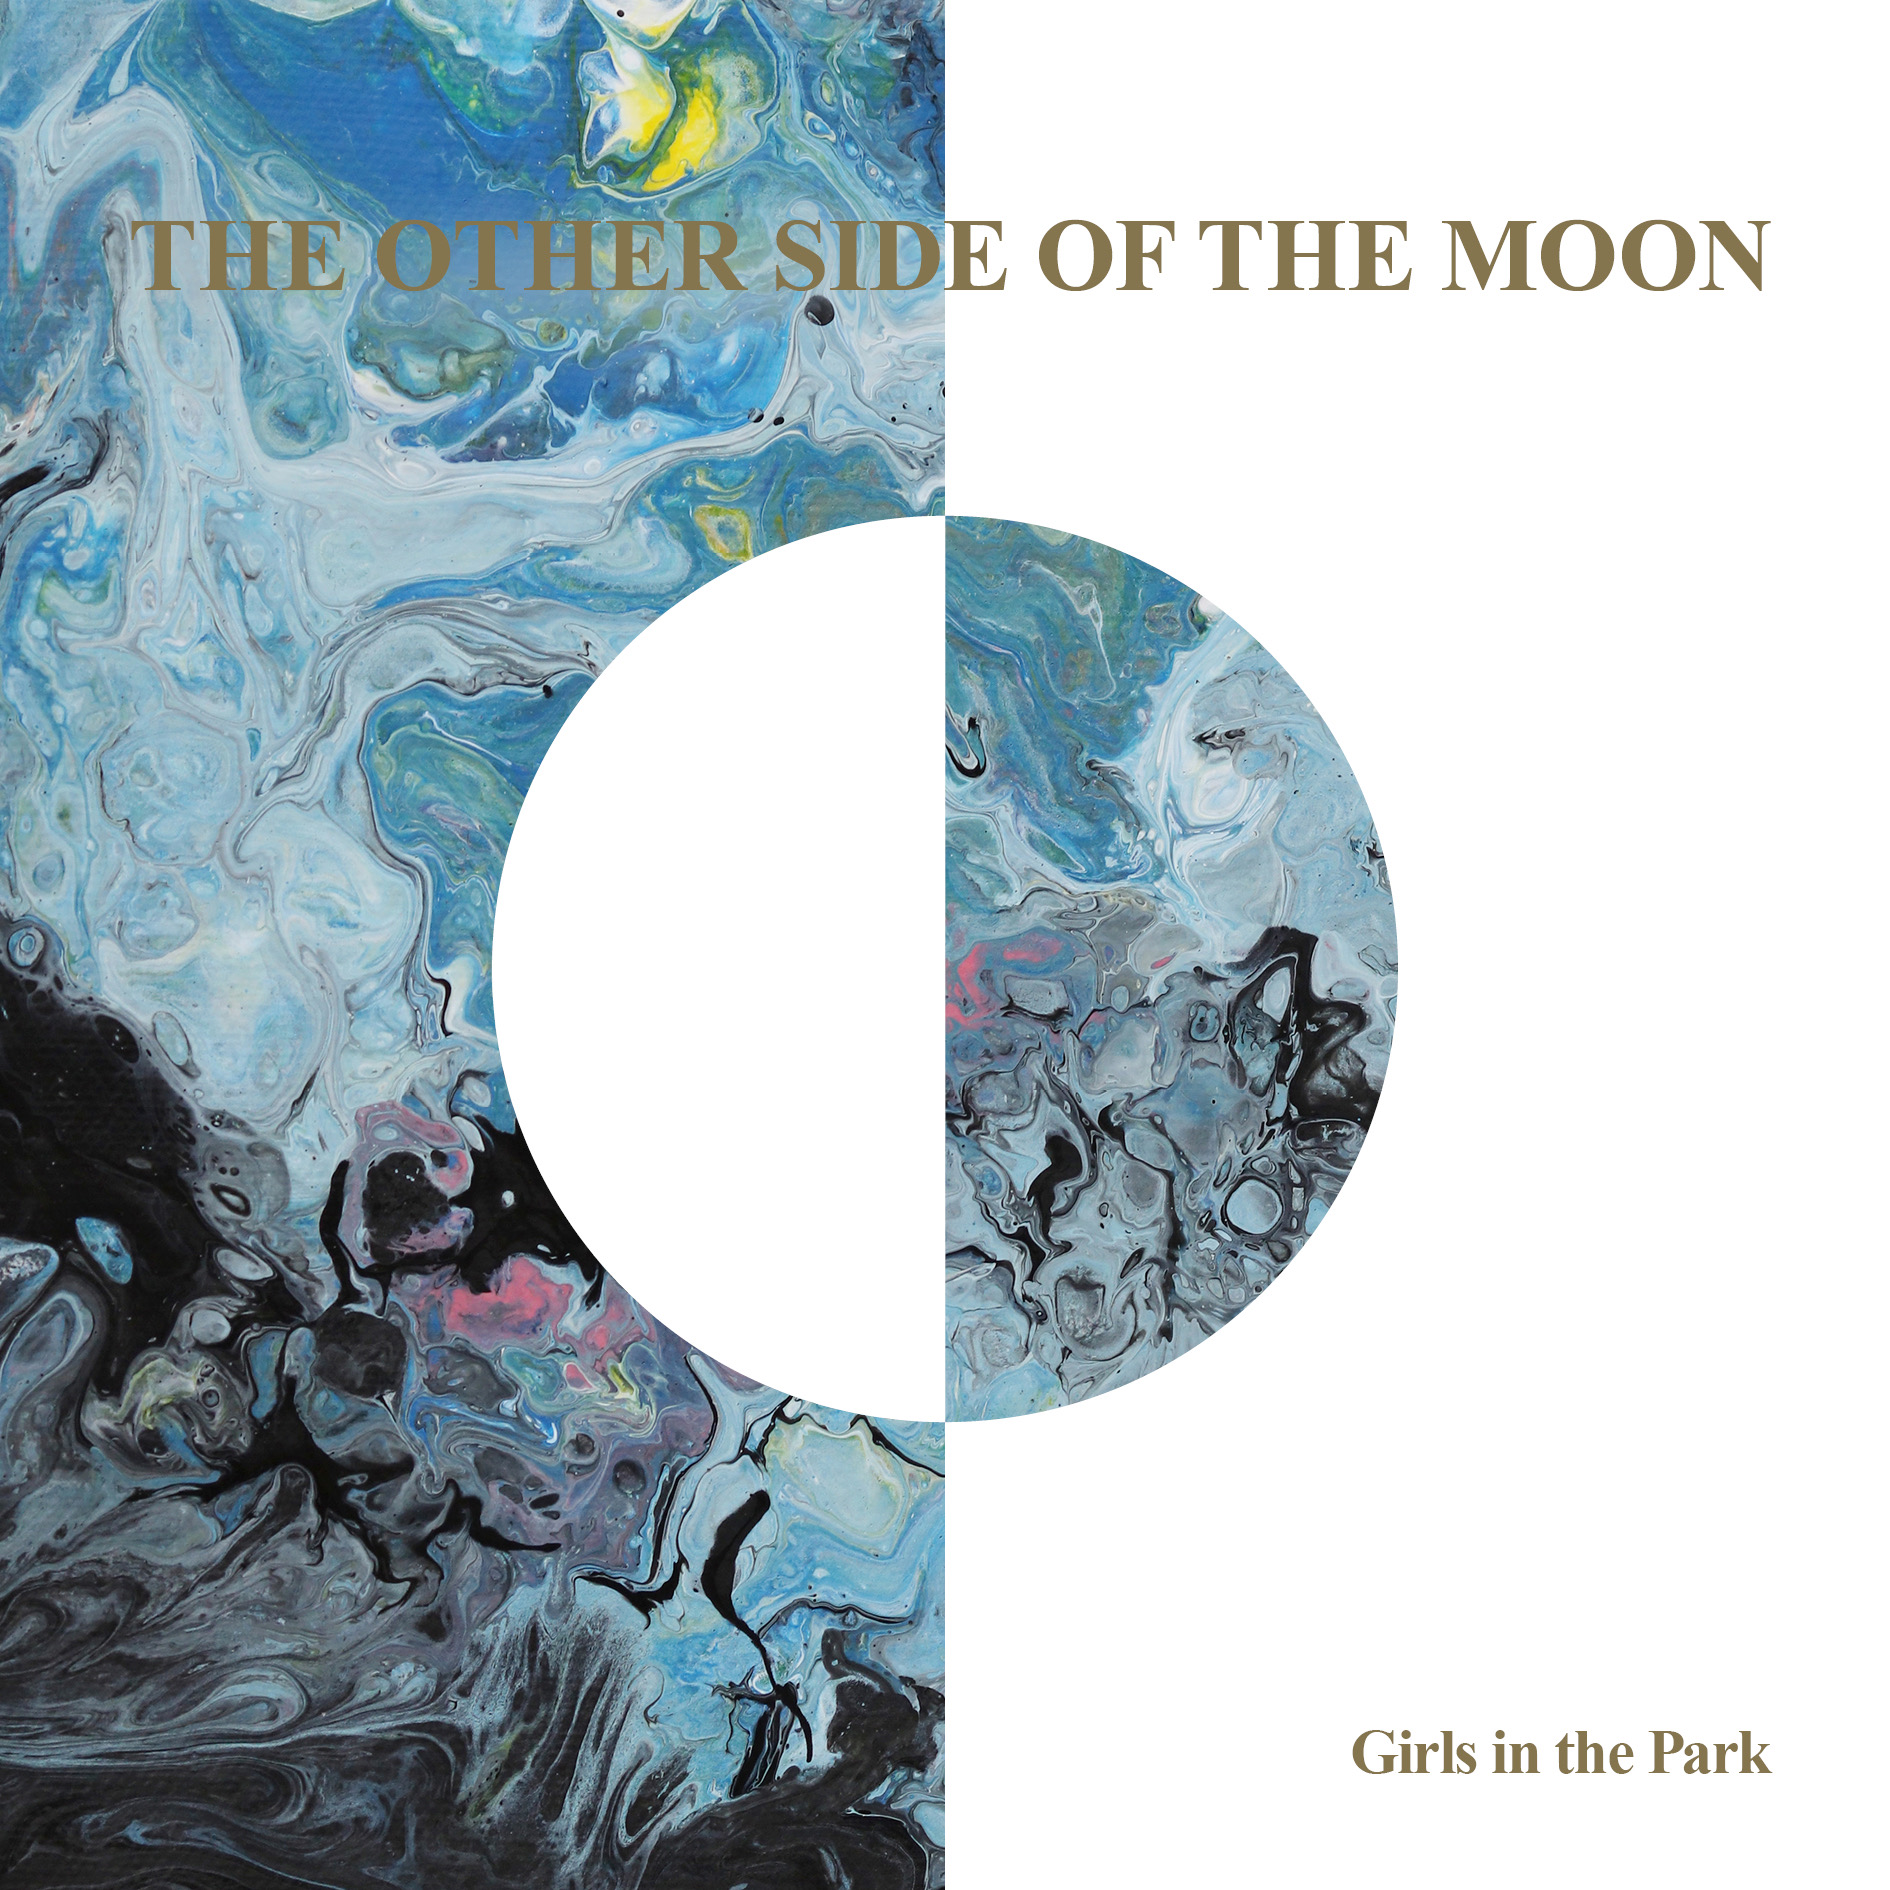 The Other Side of the Moon | Kpop Wiki | Fandom